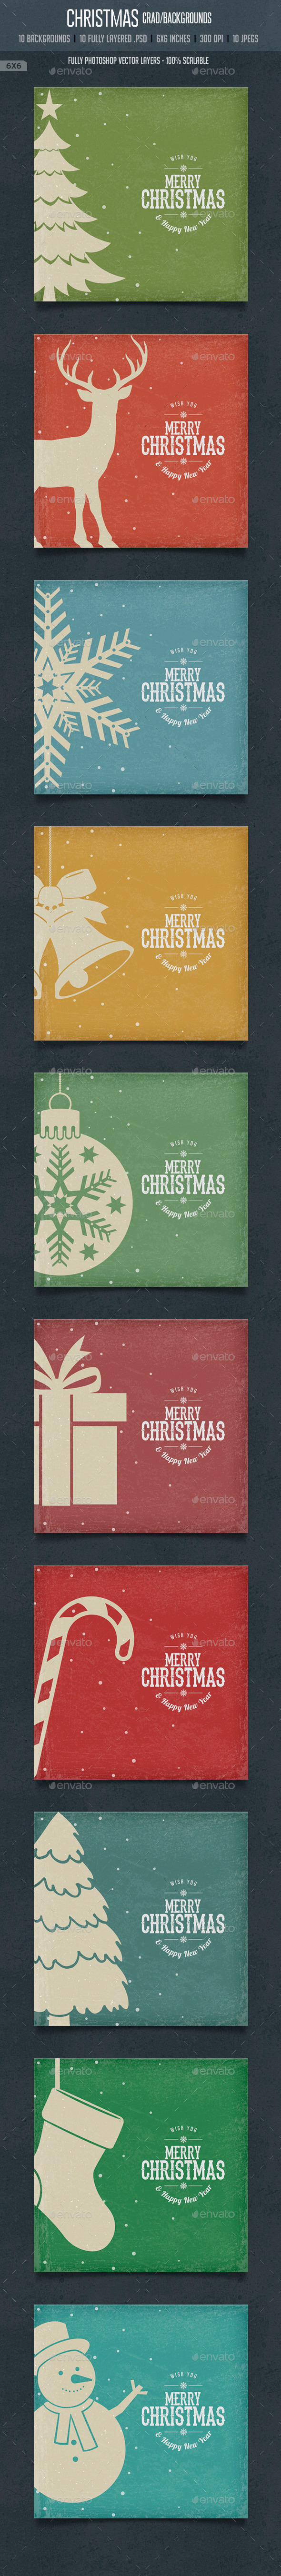 Vintage Christmas Square Cards / Backgrounds - Backgrounds Graphics